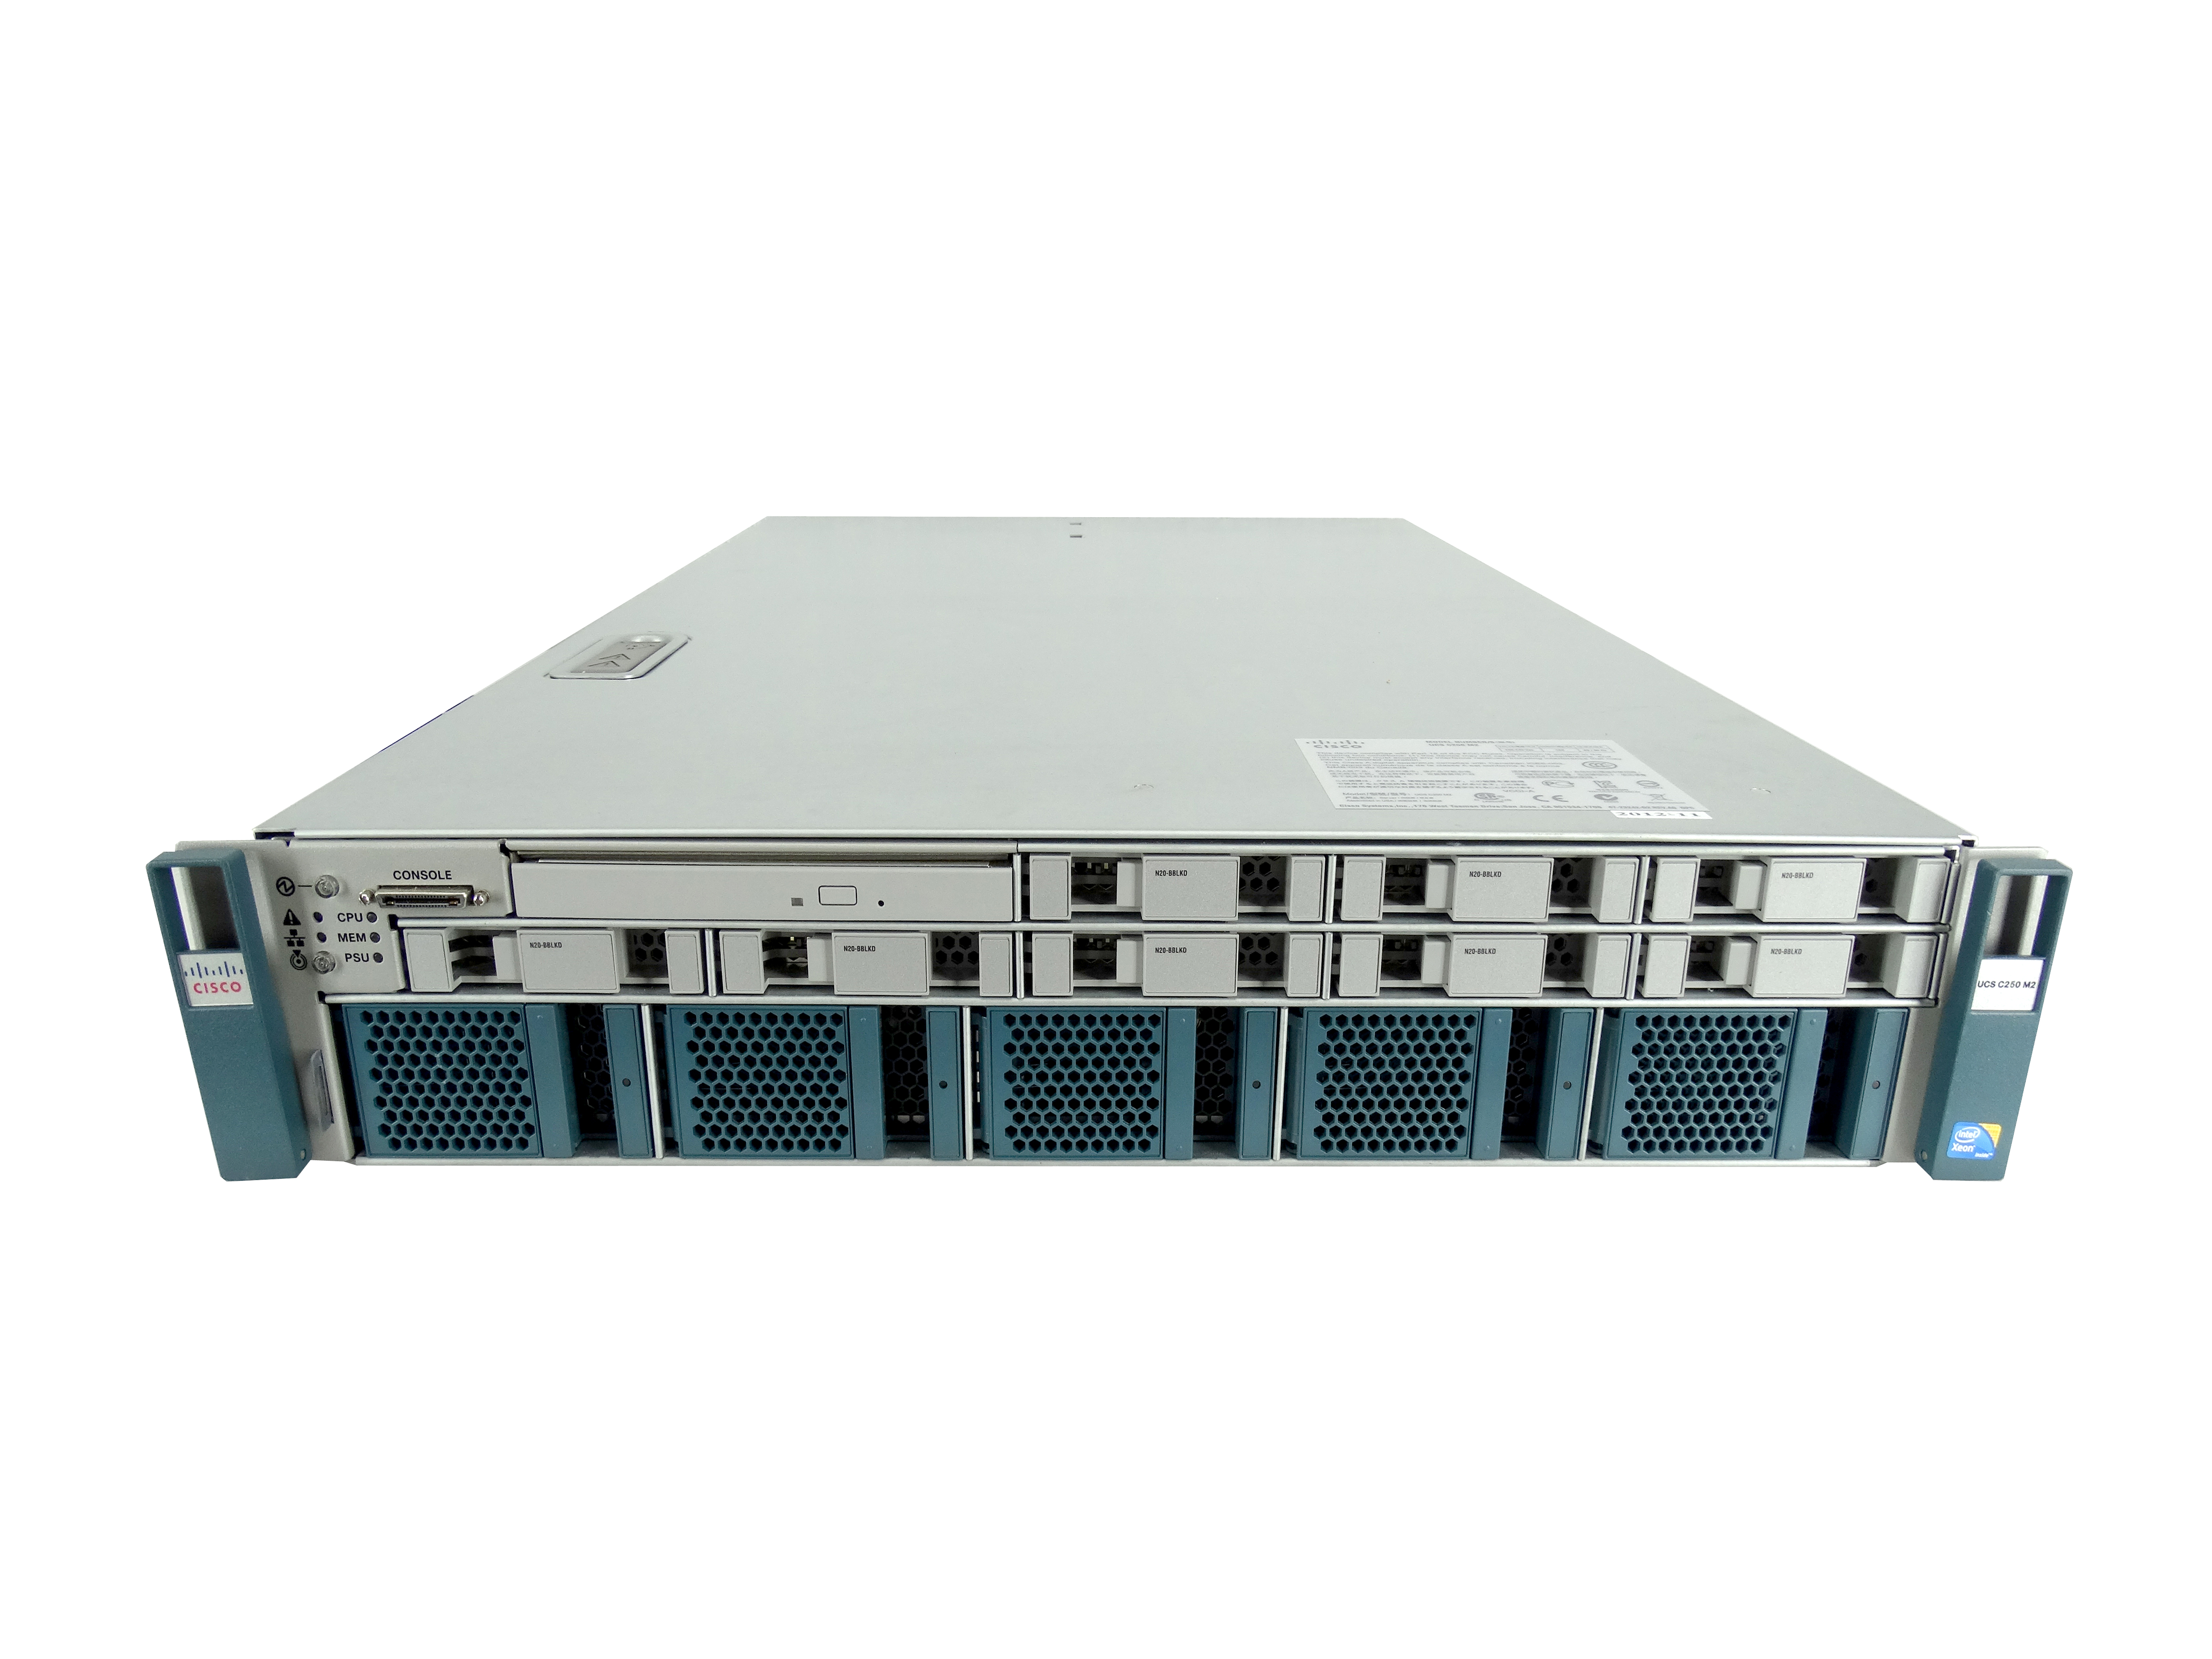 Cisco UCS C250 M2 8-Bay SFF 2U Rackmount Server